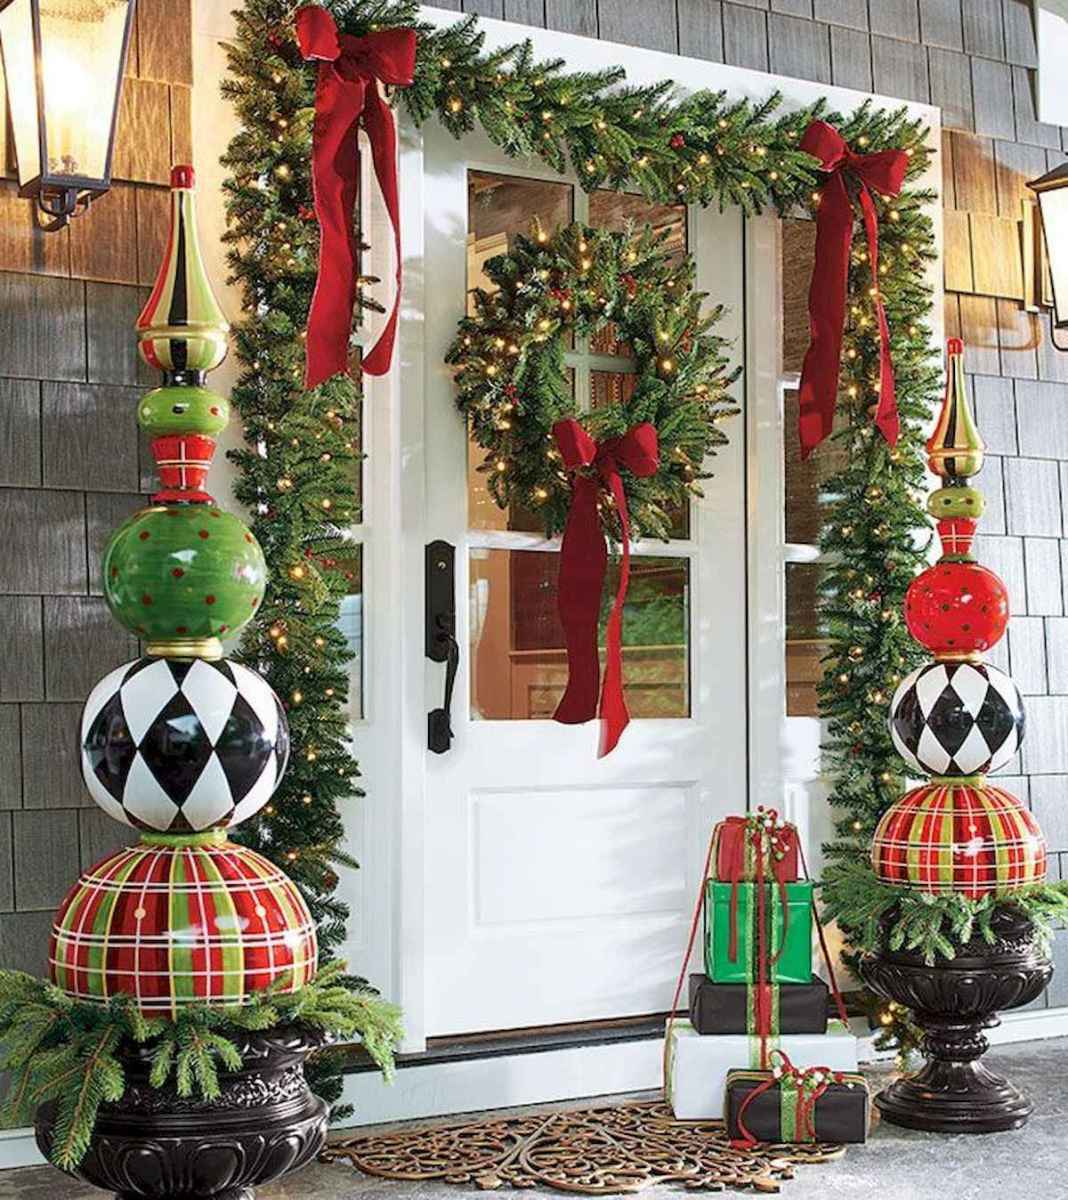 50 stunning christmas front porch decor ideas and design (42)